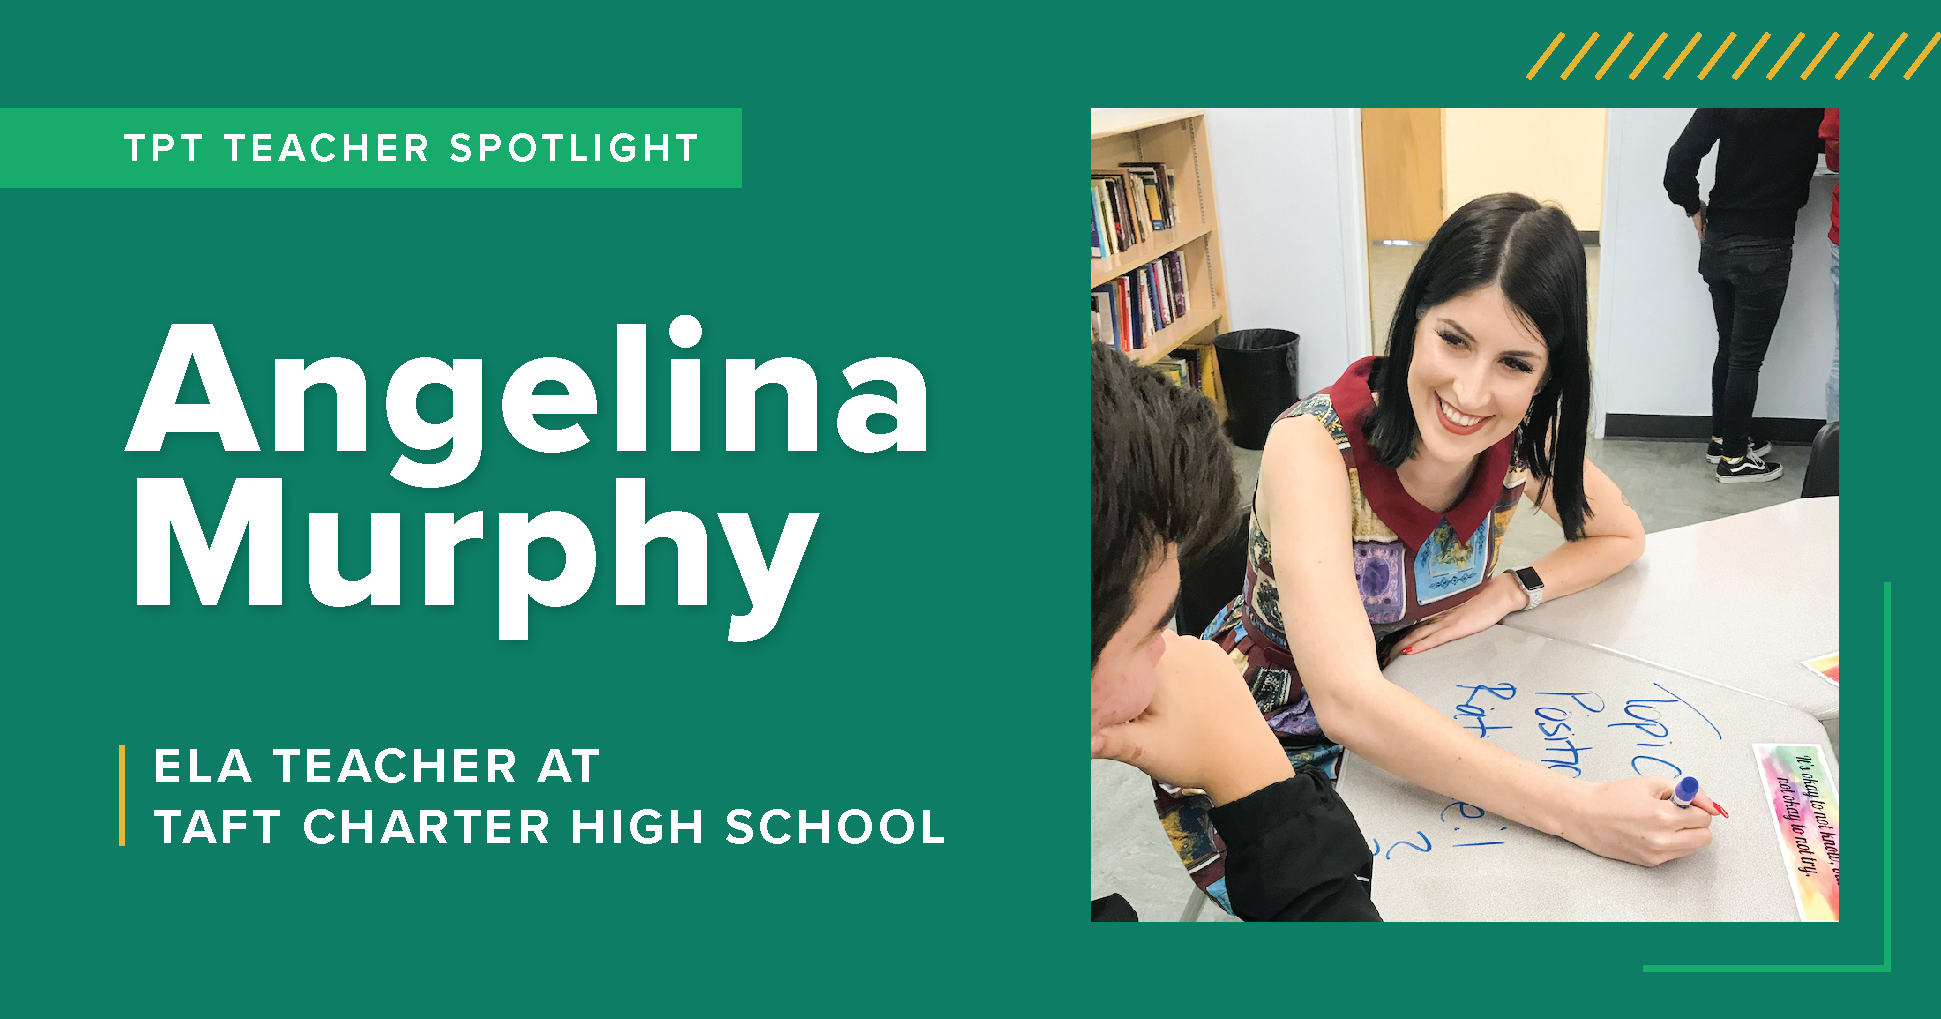 A TpT Teacher Spotlight on Angelina Murphy, a high school ELA teacher at Taft Charter High School